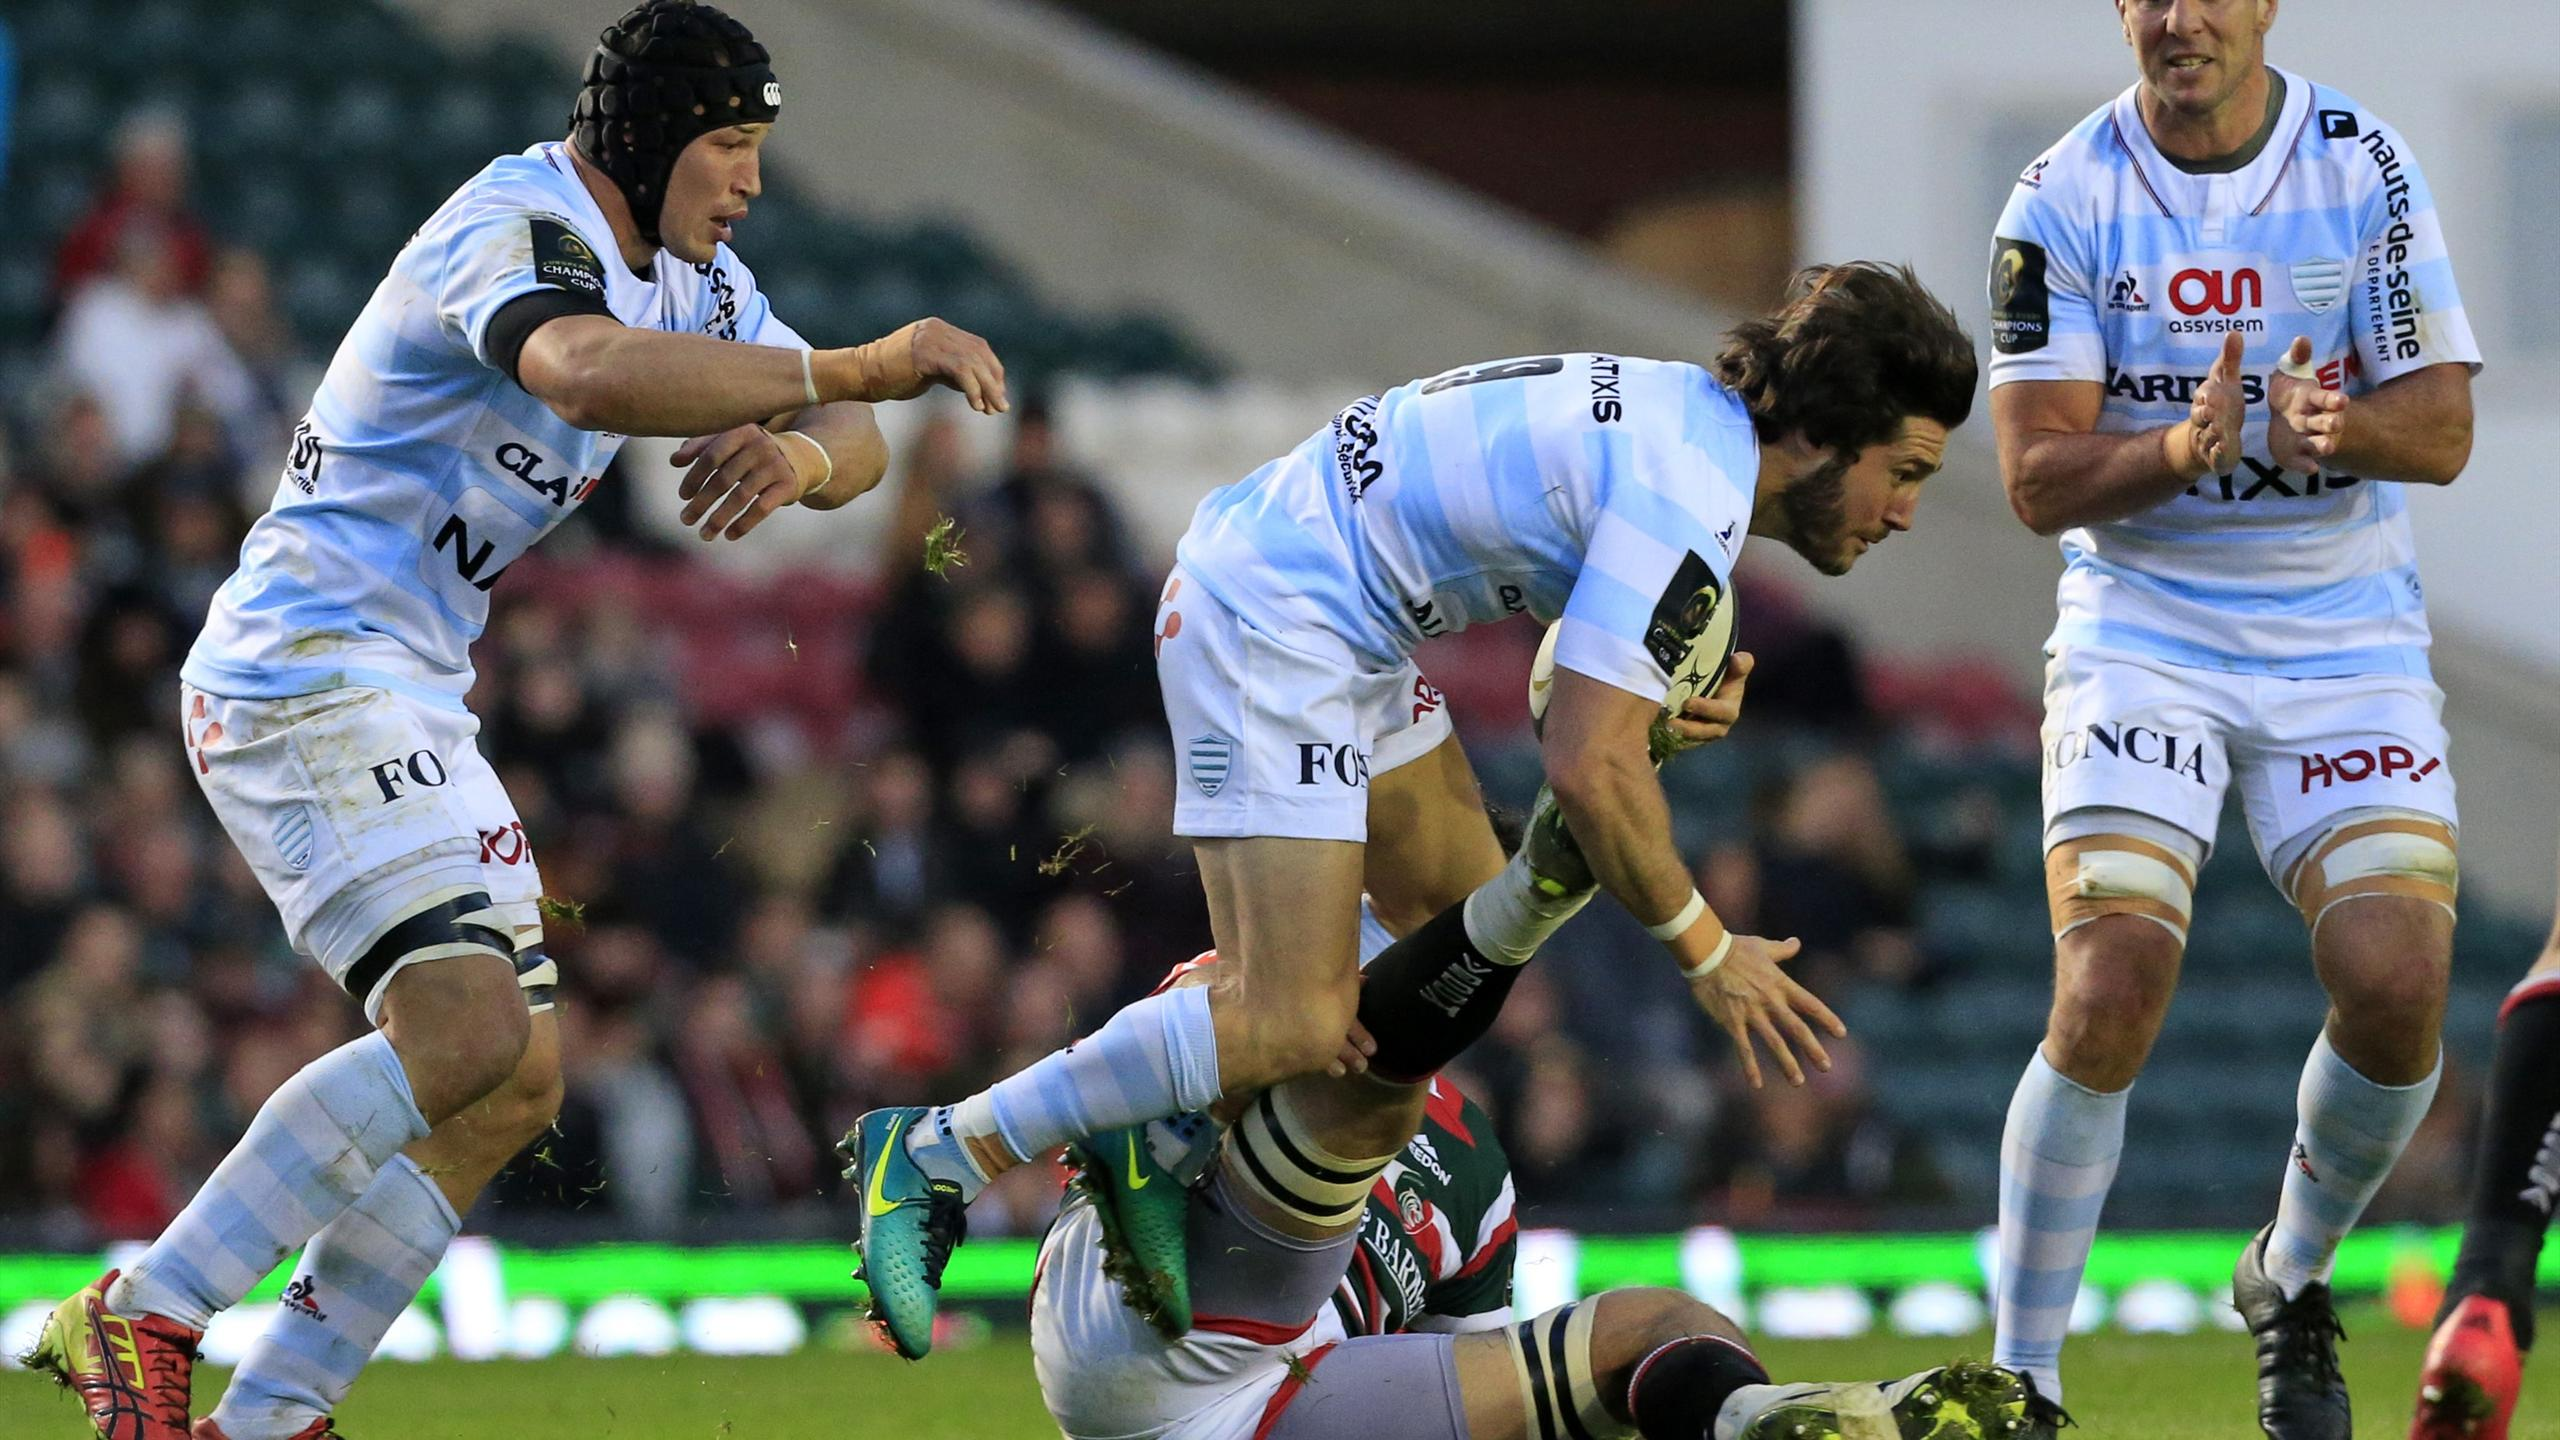 Maxime Machenaud (Racing 92) - 23 octobre 2016